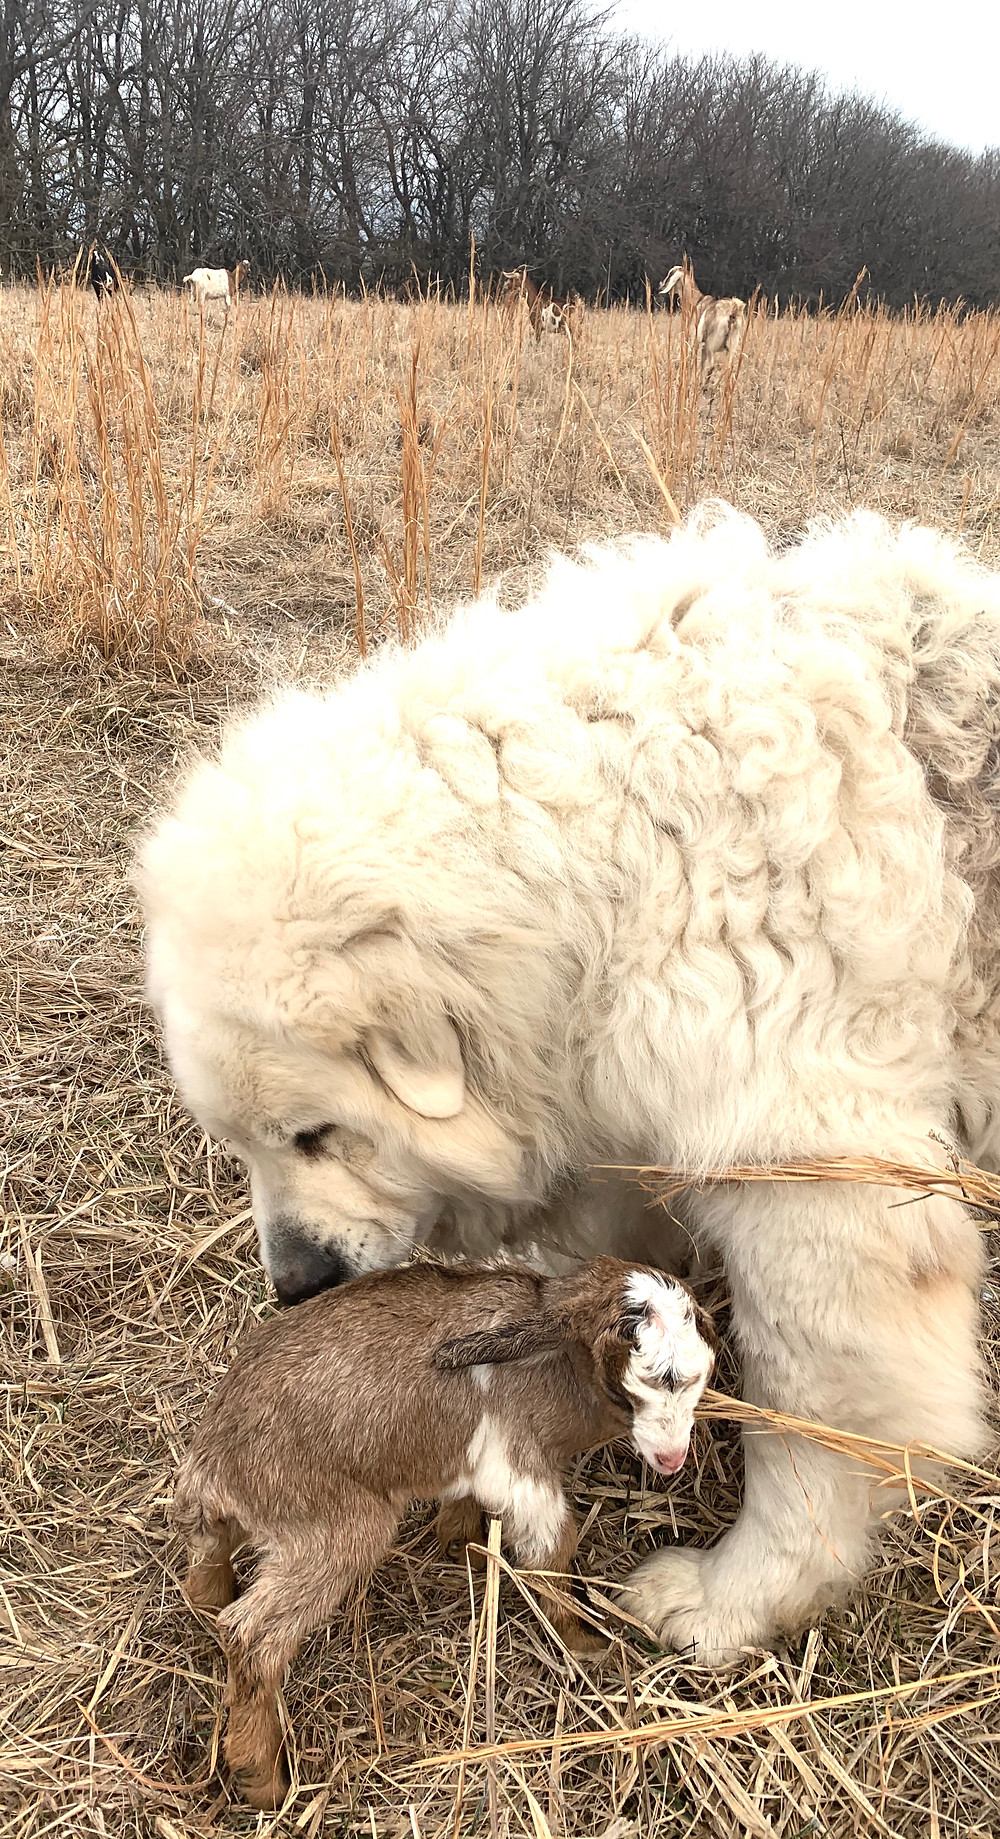 Bowser, Our Wooly Mammoth and Great Pyrenees, is a Great Protector, 2/7/20